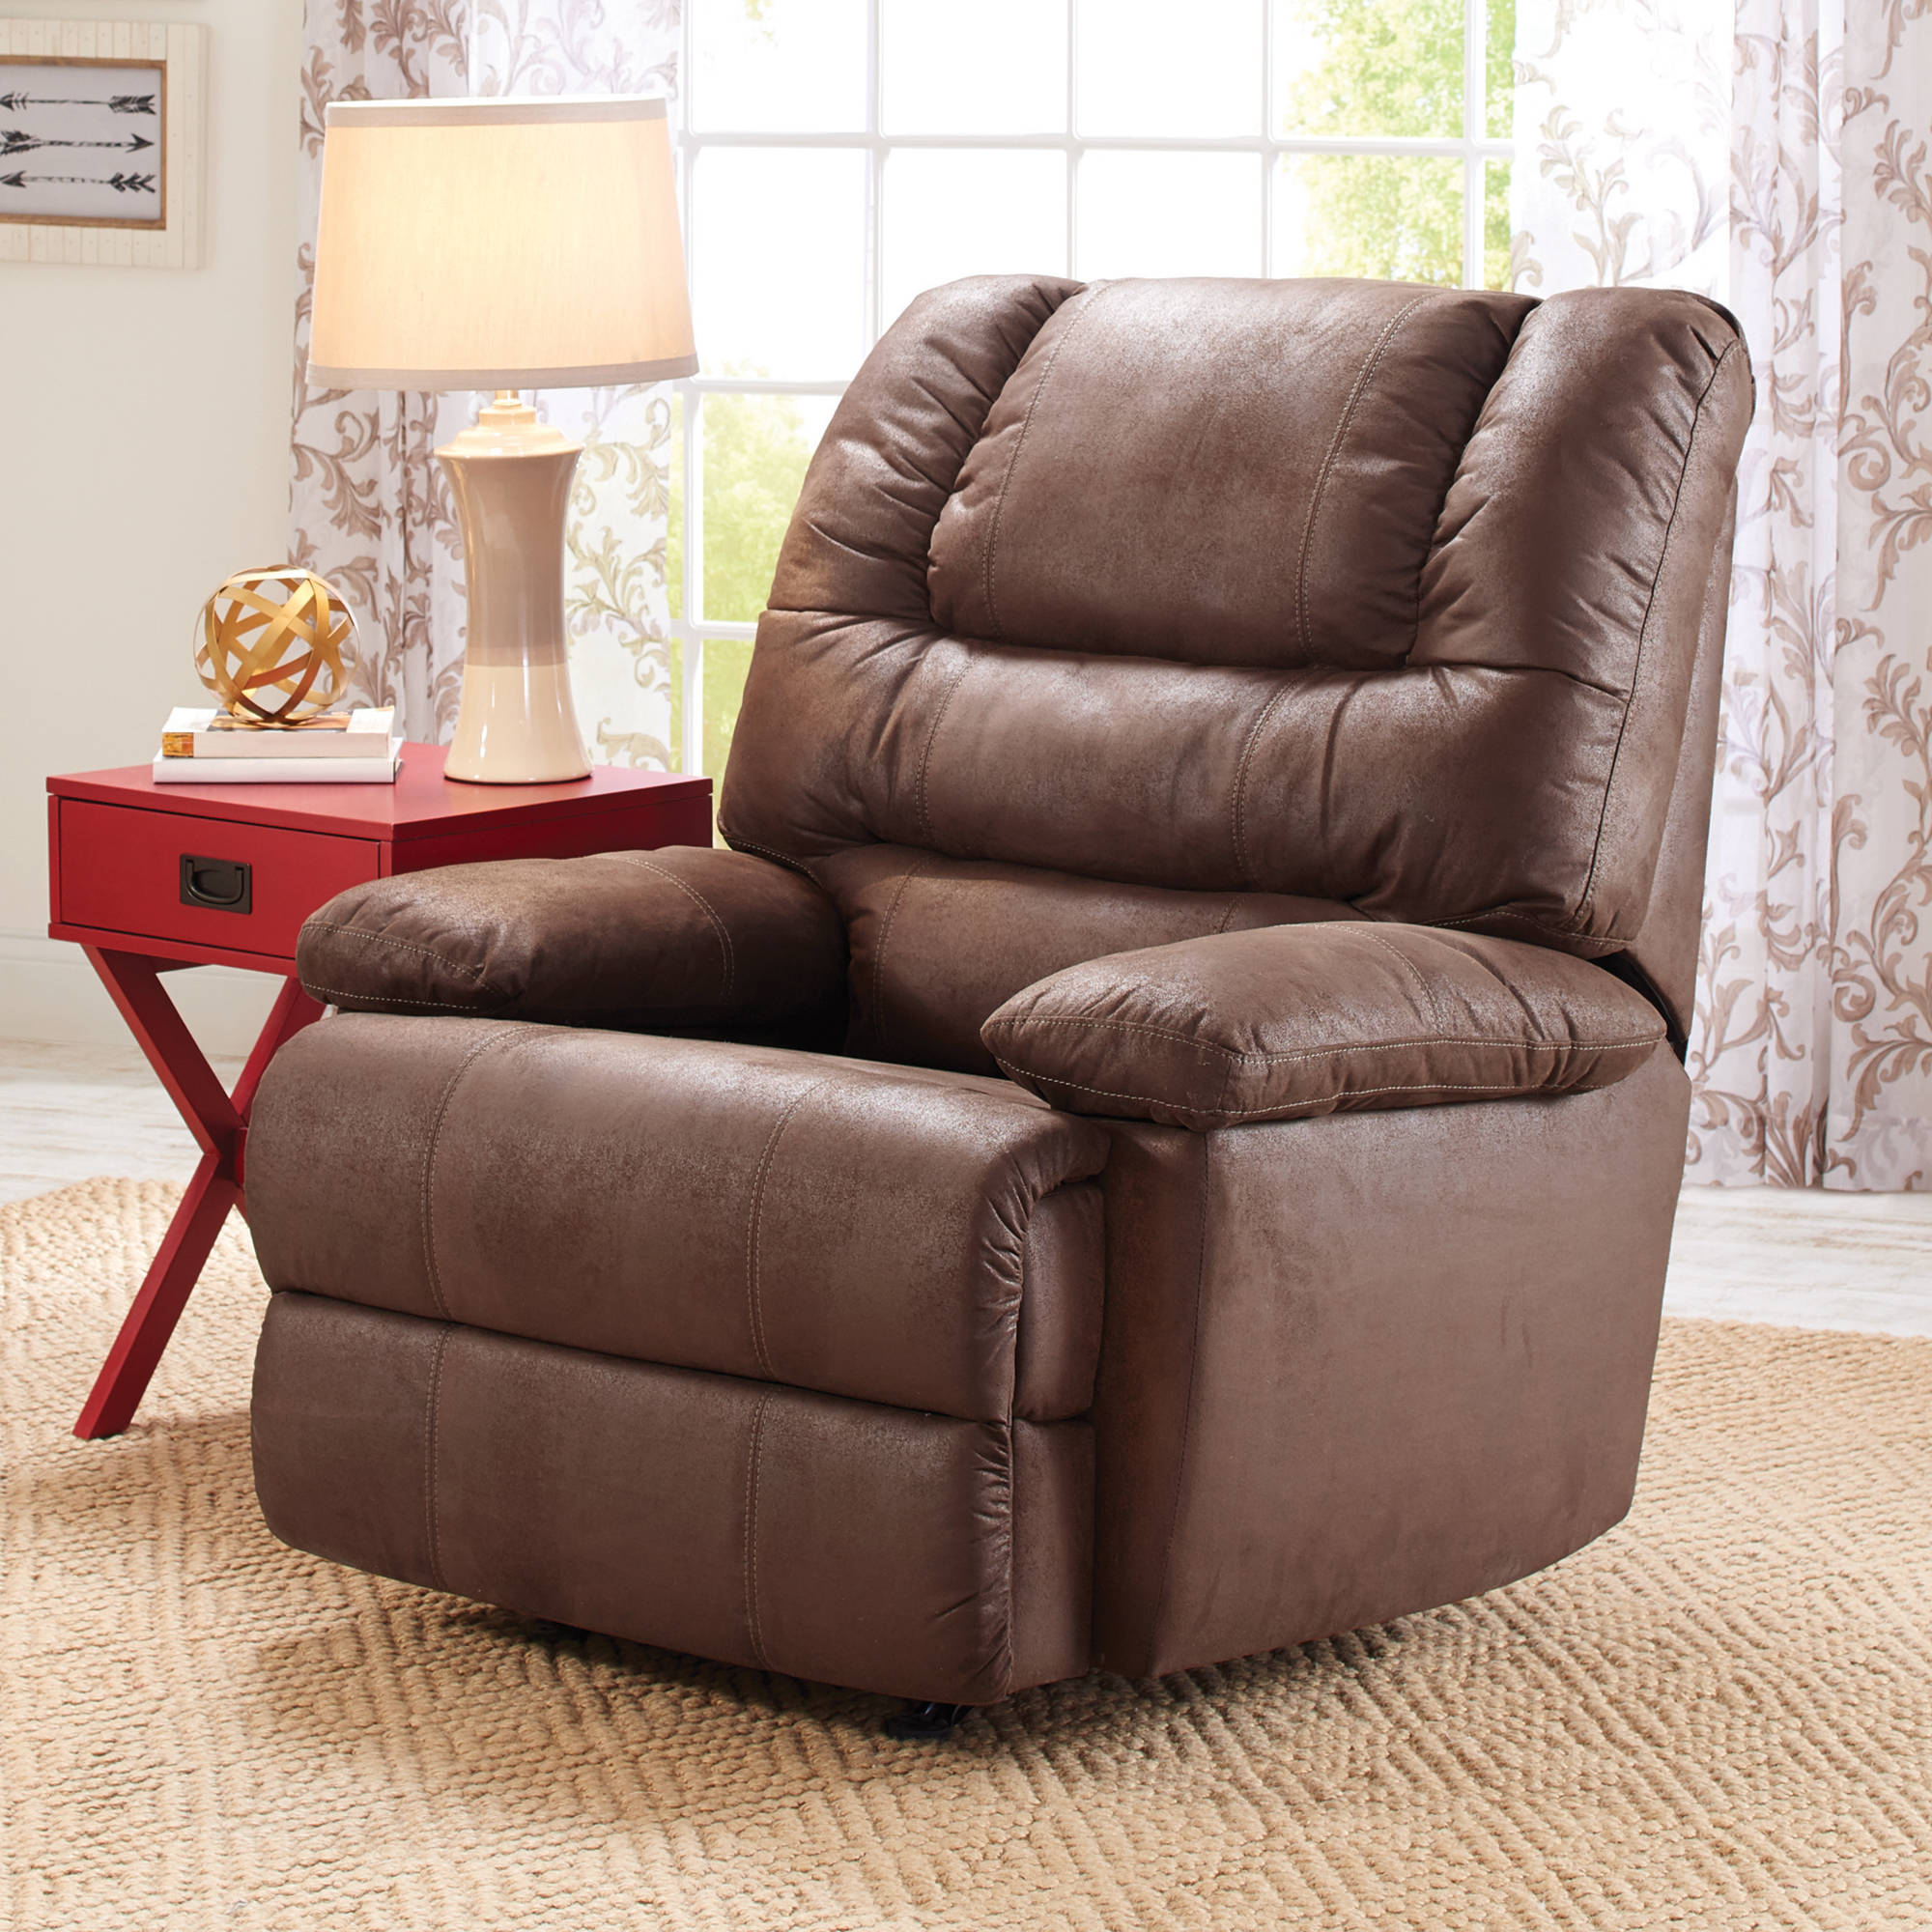 & Better Homes and Gardens Deluxe Recliner - Walmart.com islam-shia.org